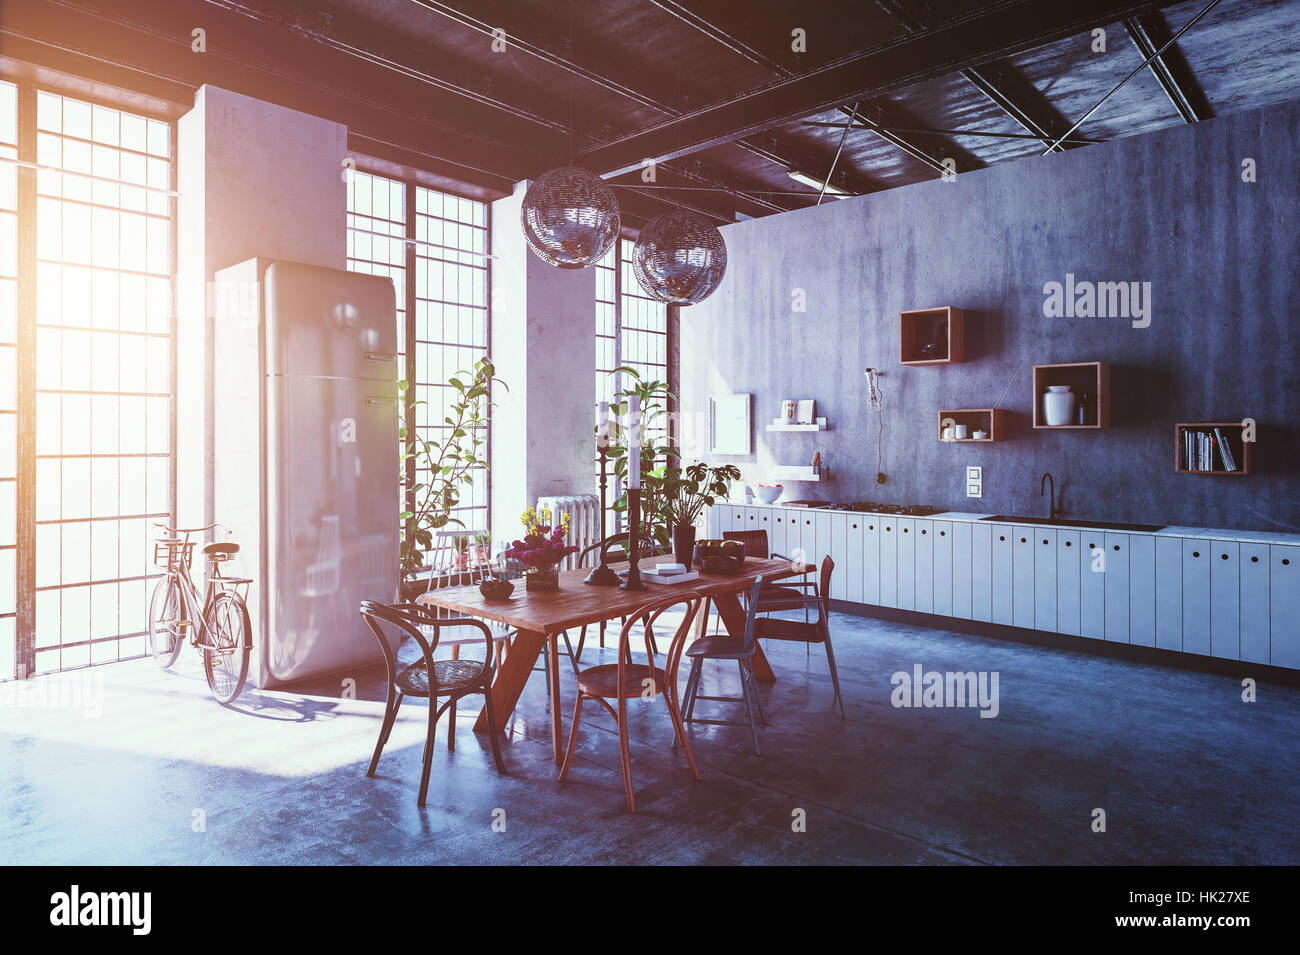 Interior of spacious modern apartment with dining table, chairs and bicycle leaning by tall windows with sun flare Stock Photo